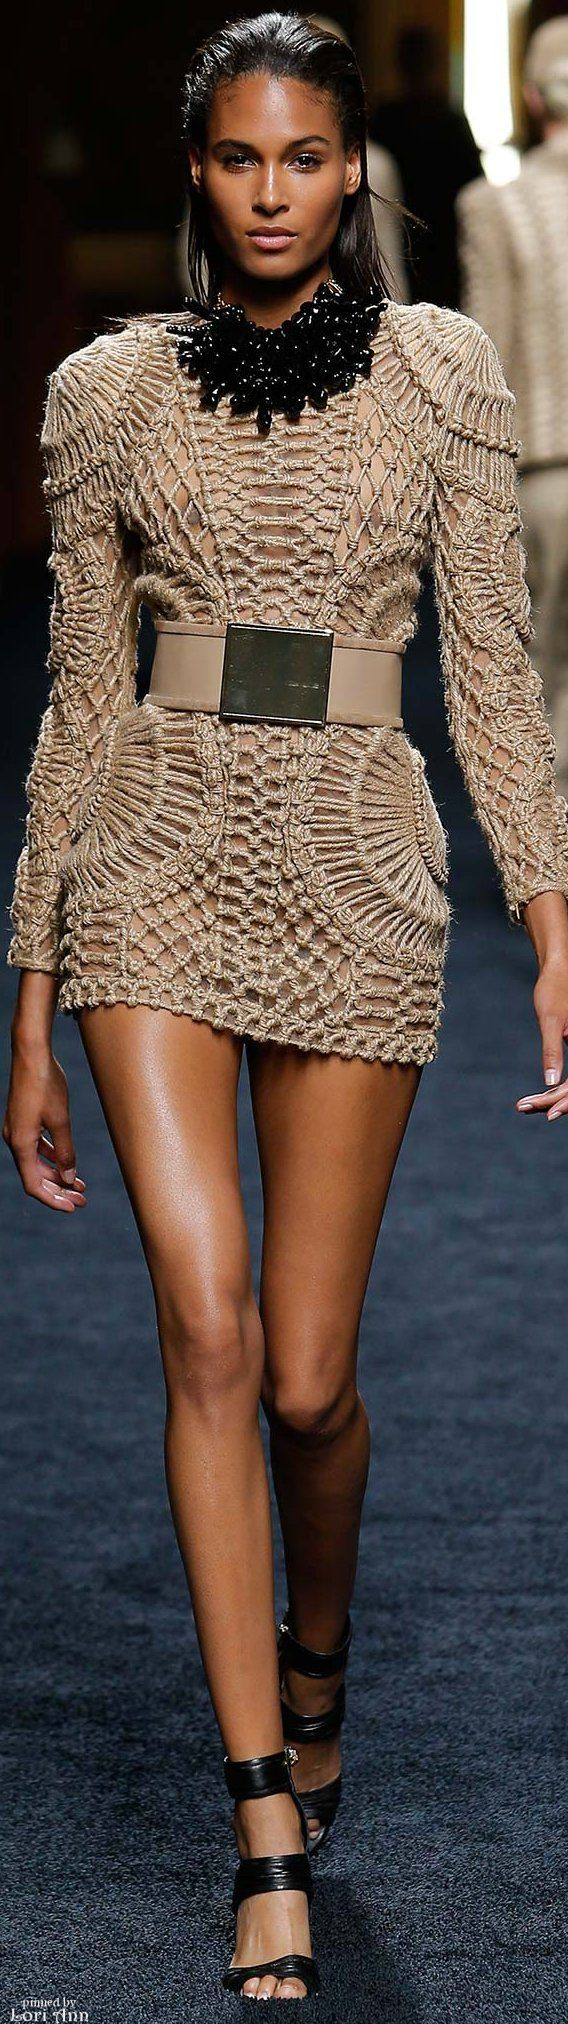 #Balmain from the Menswear Collection 2016 - #JetSet / TechNews24h.com